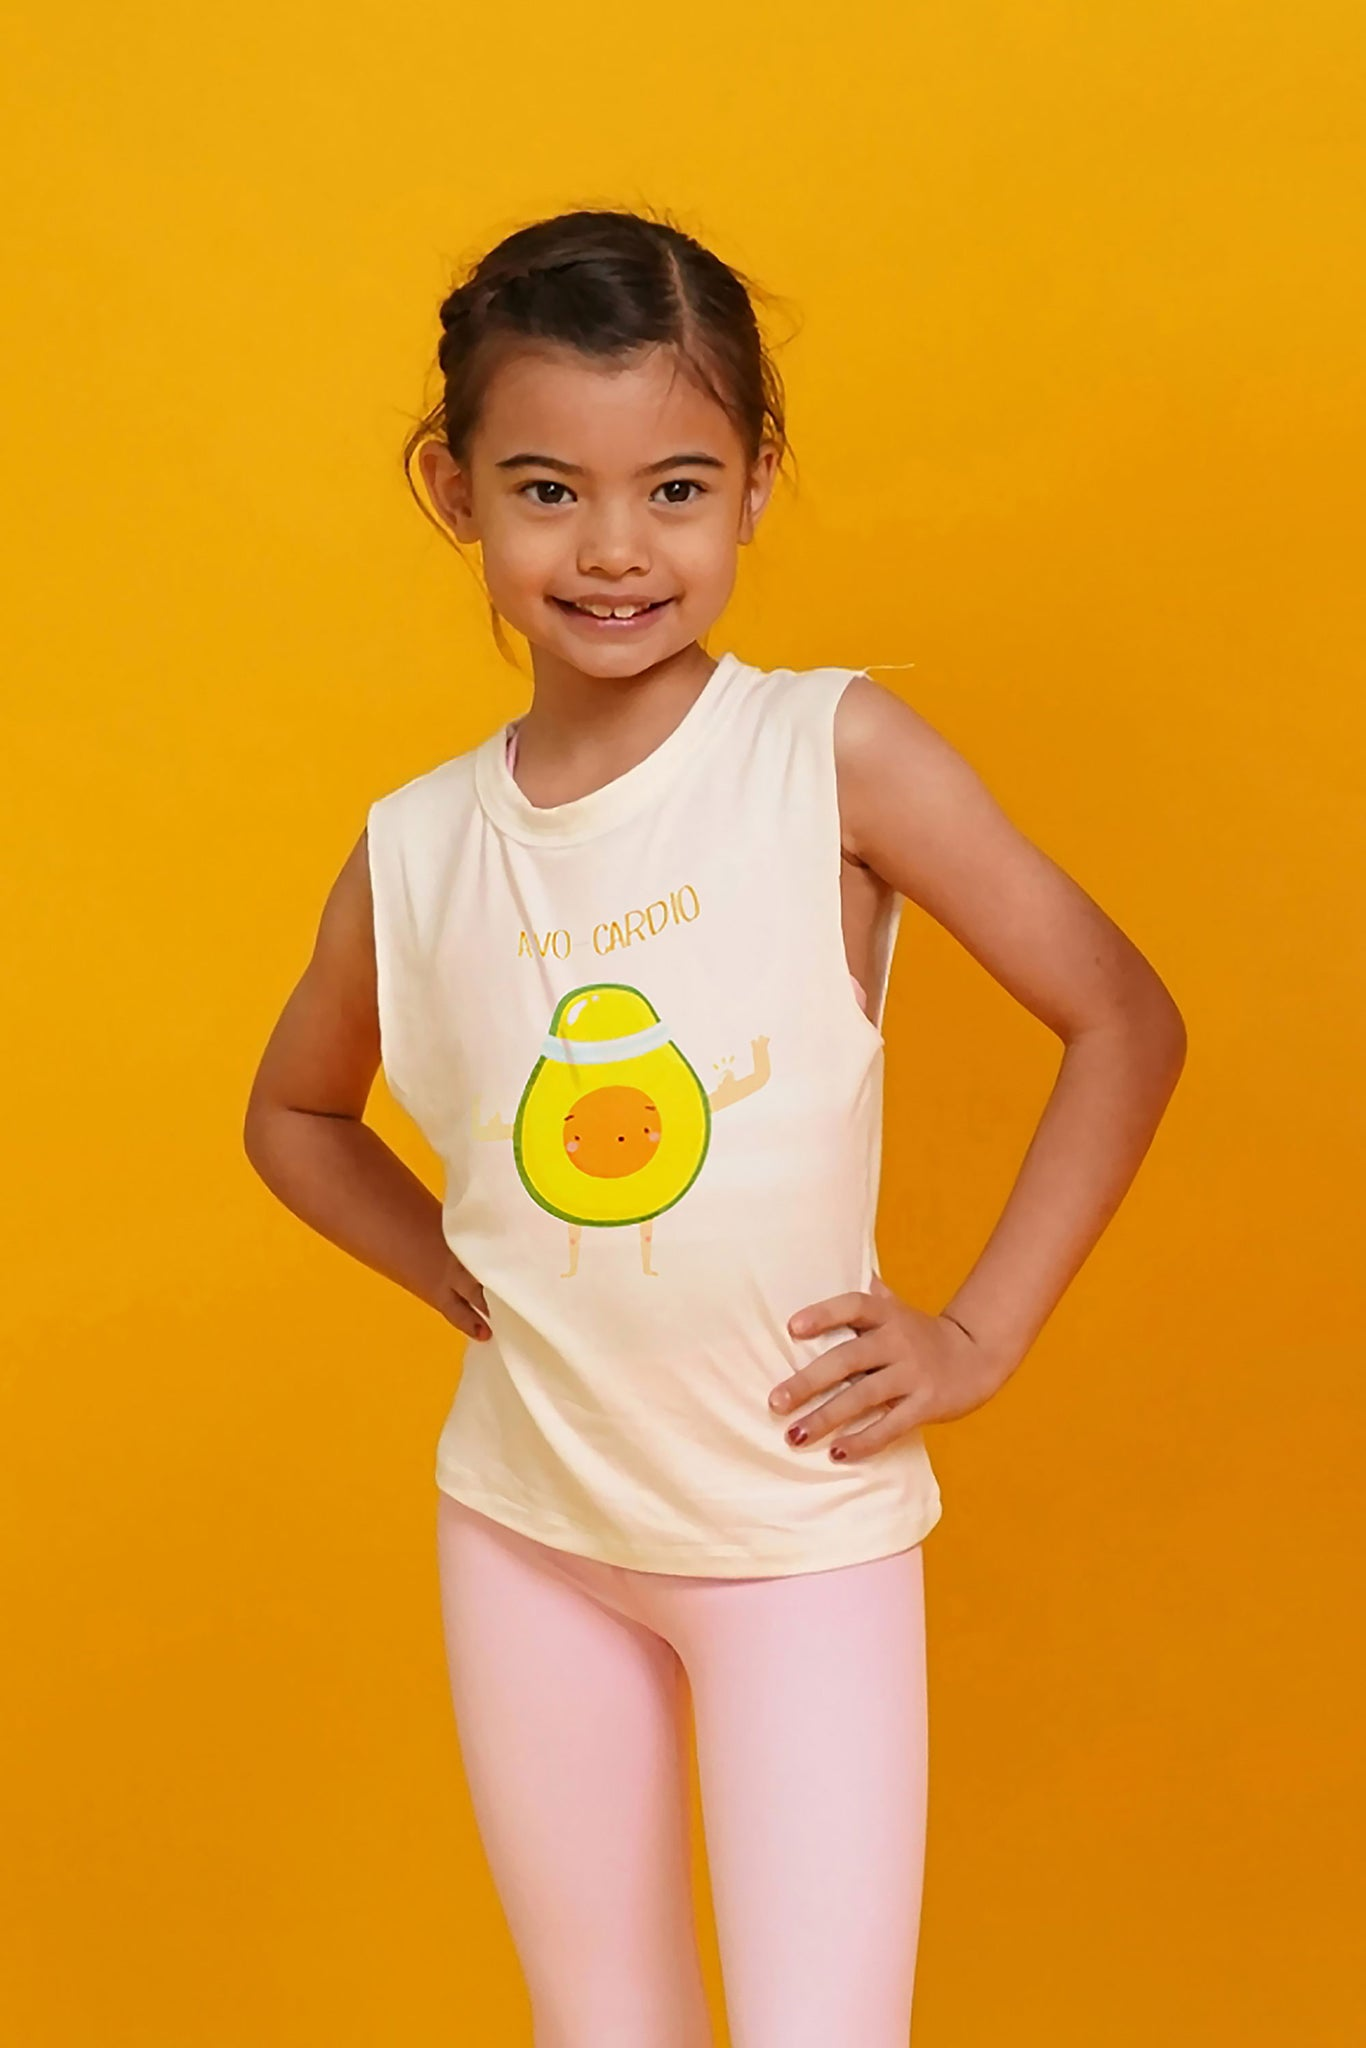 Avo-Cardio Mini Tank Top